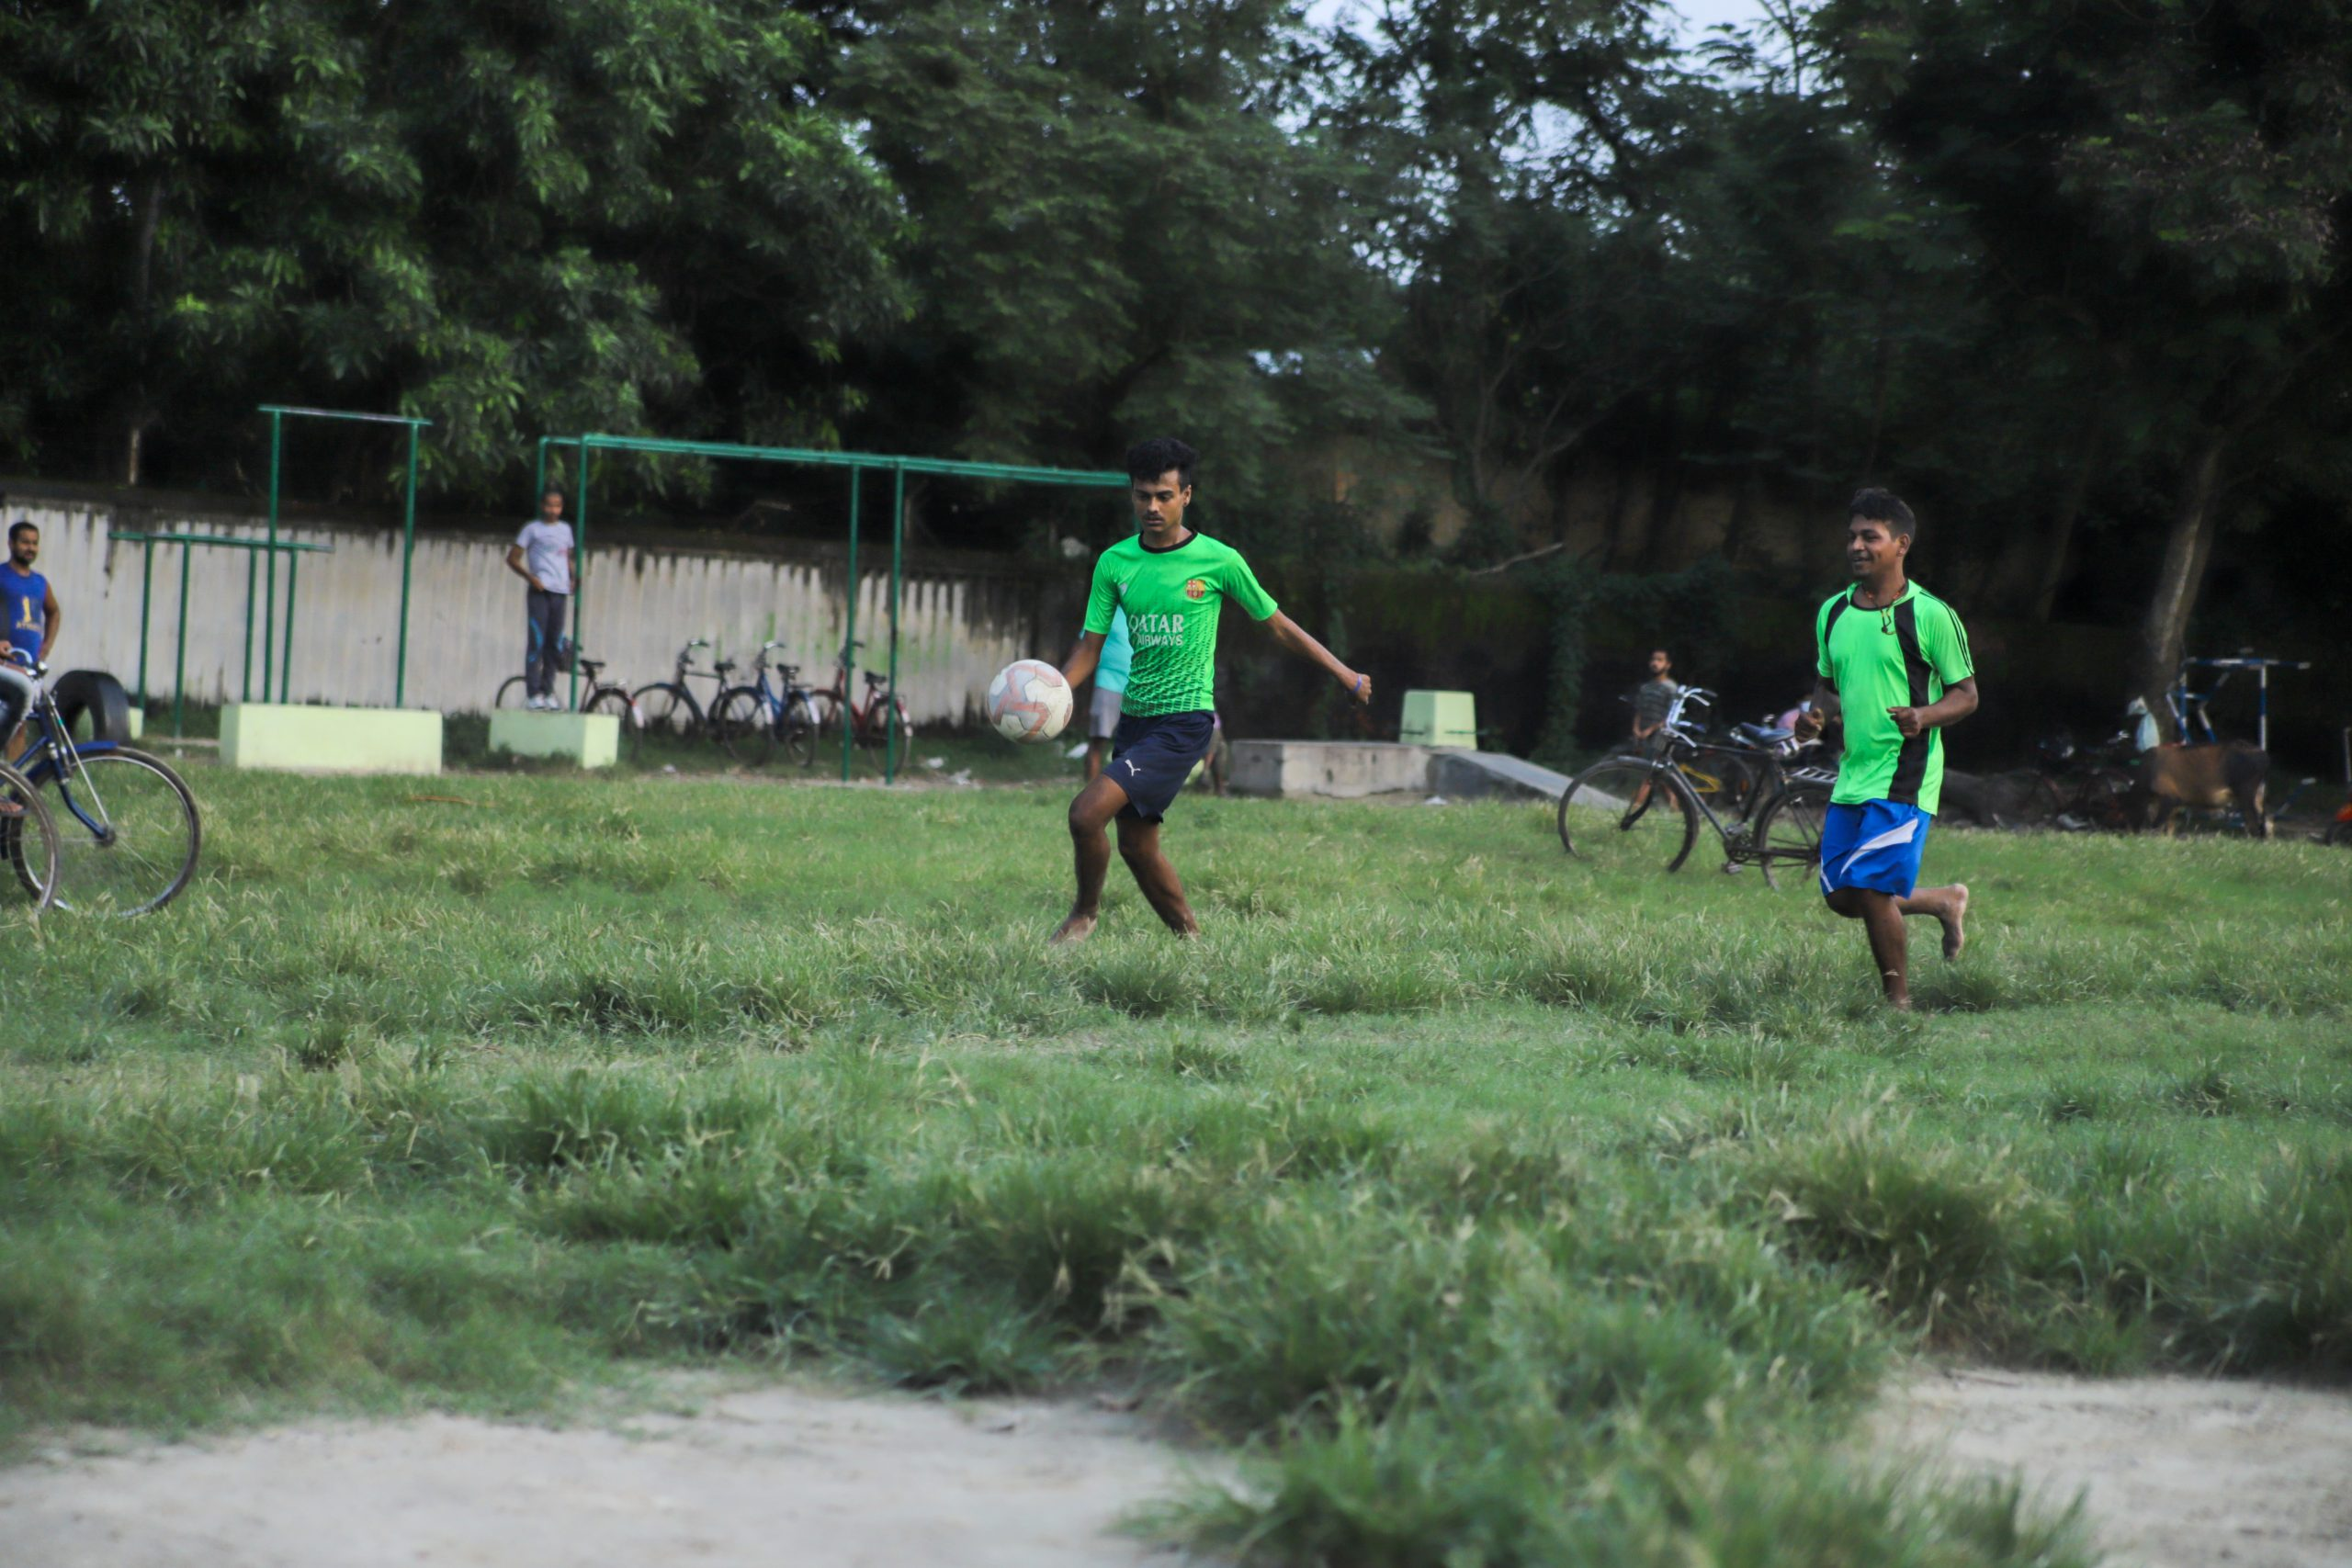 Indian boys playing football